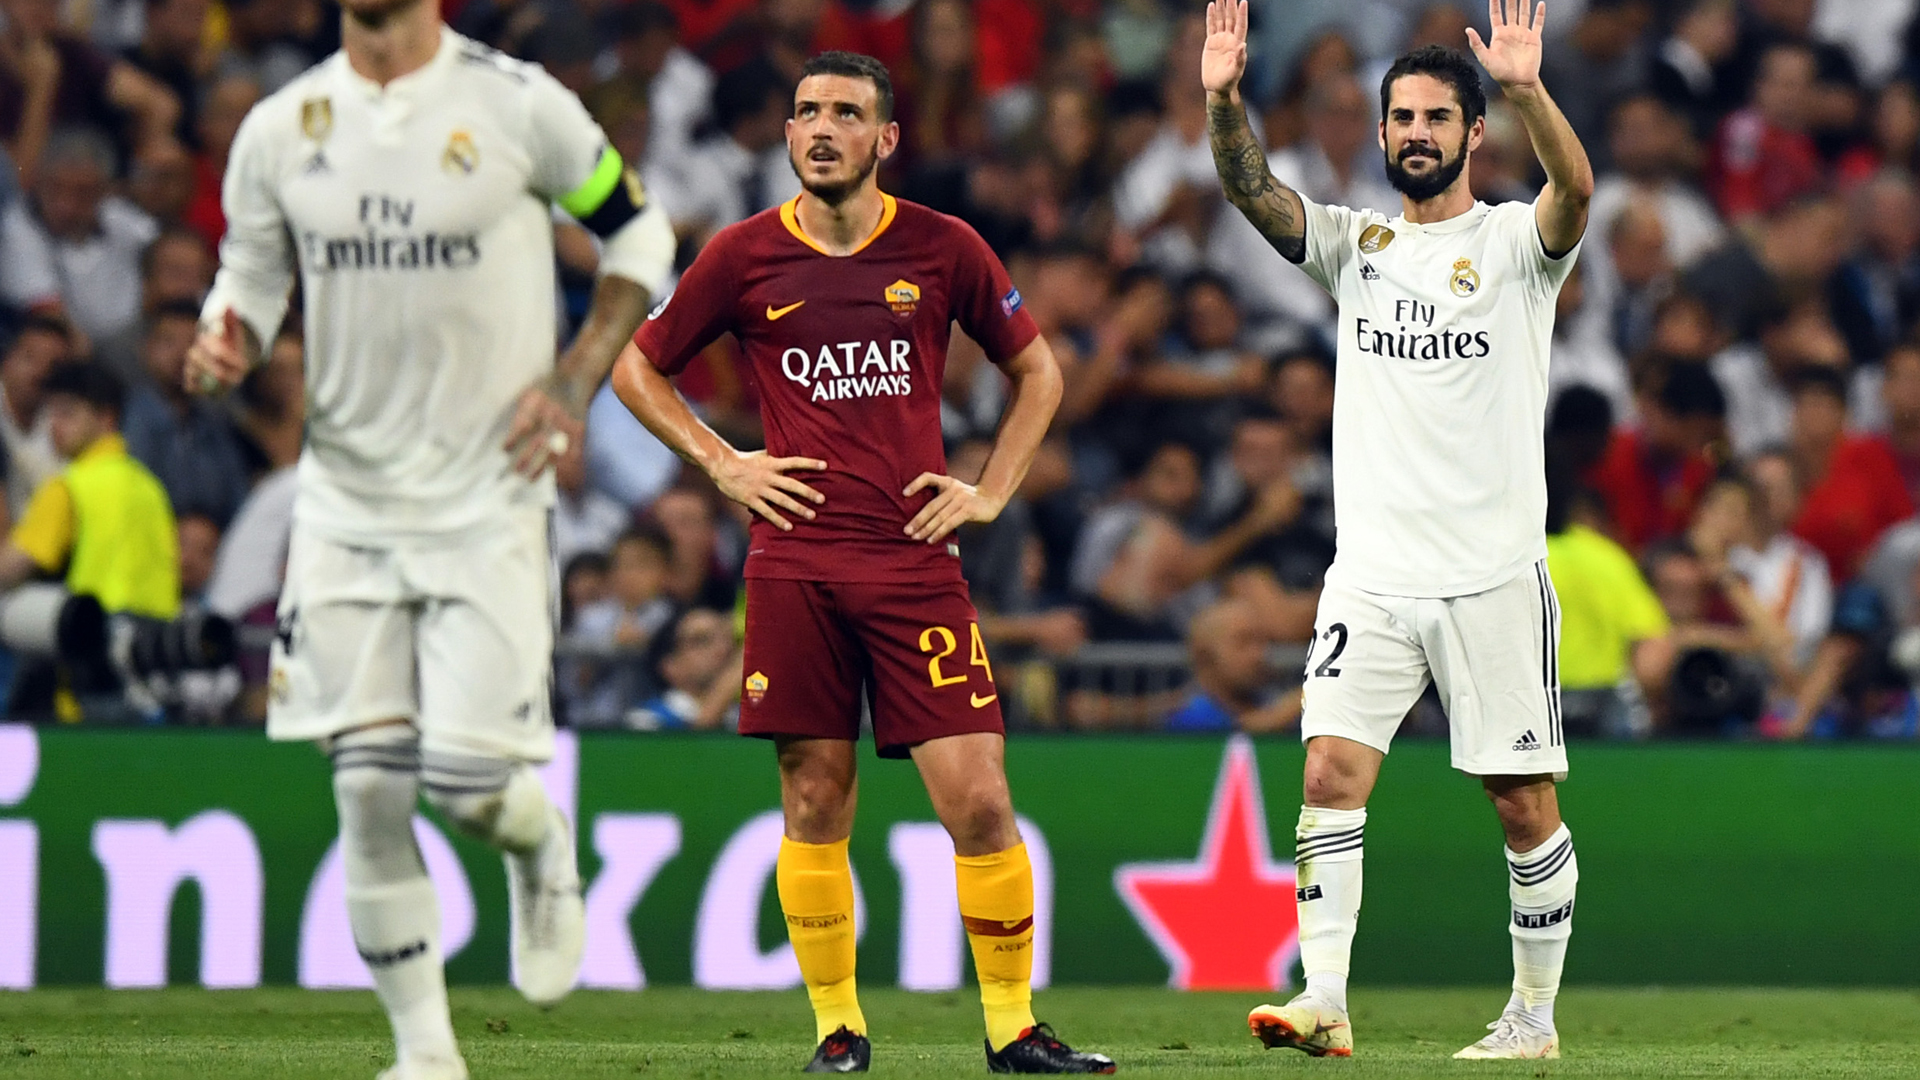 Florenzi Isco Real Madrid Roma Champions League